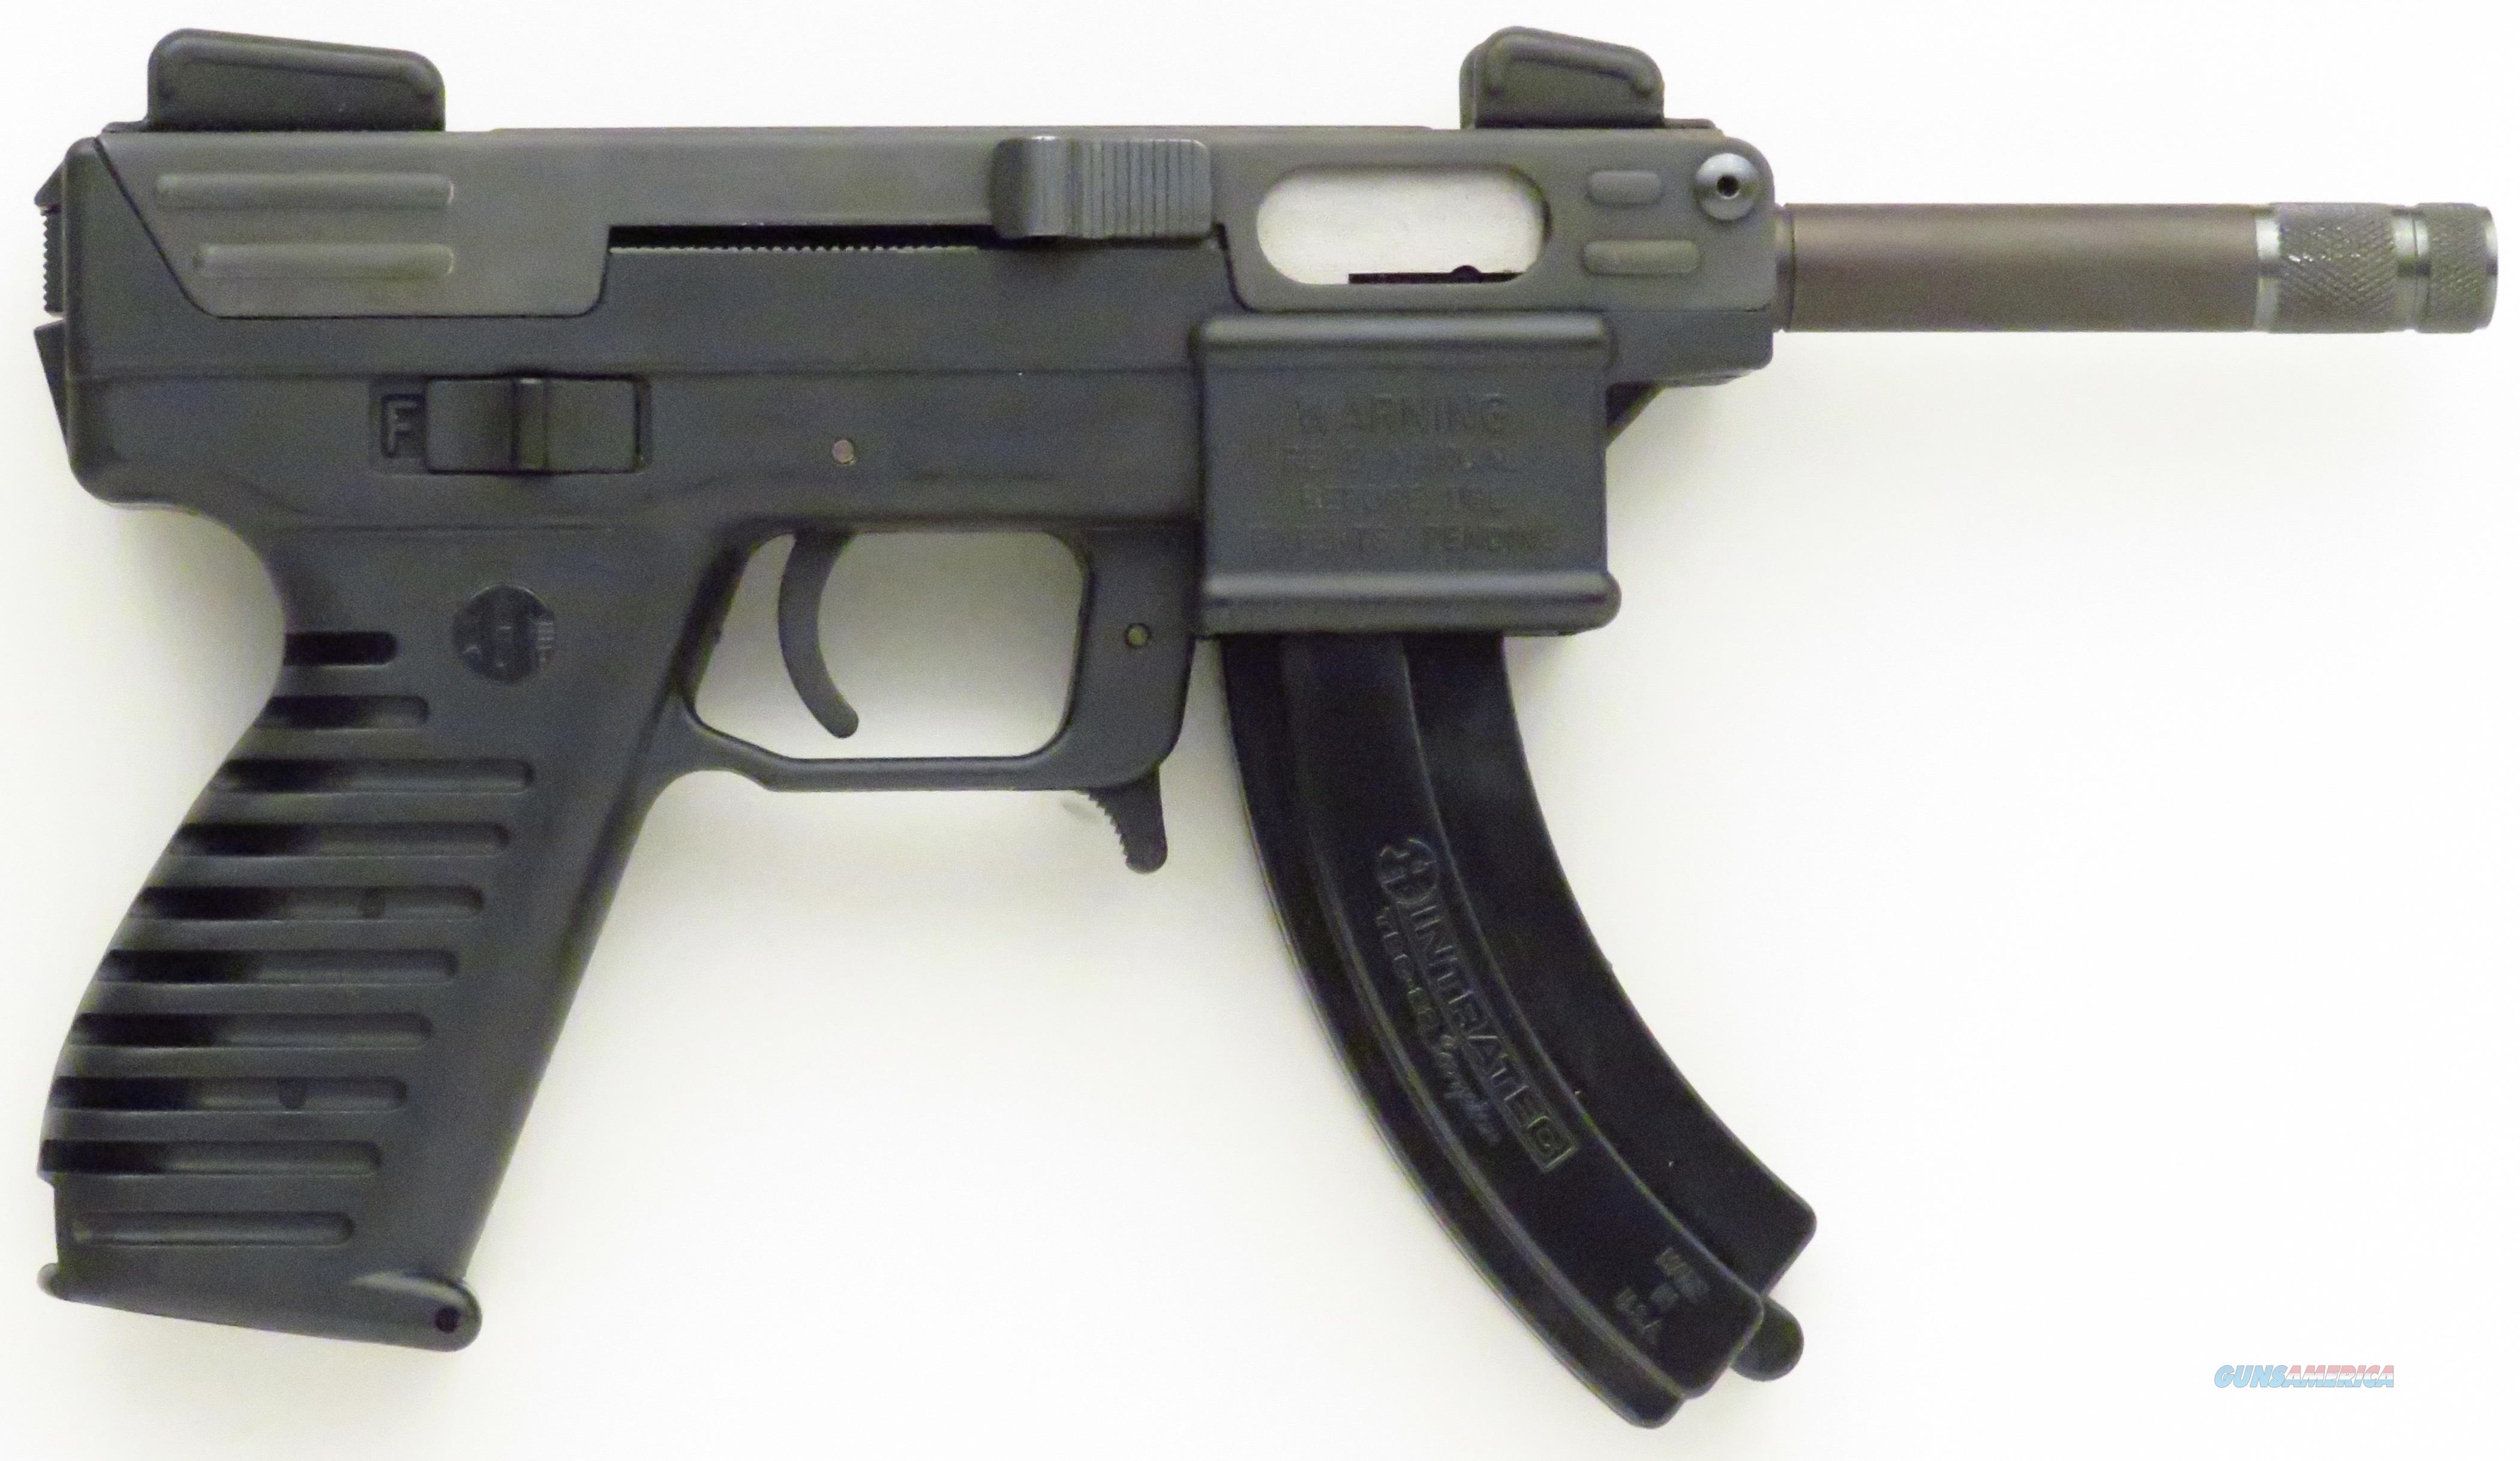 Intratec TEC-22T .22 LR, 4-inch threaded barrel, thread protector, magazine, papers and hard case  Guns > Pistols > Intratec Pistols